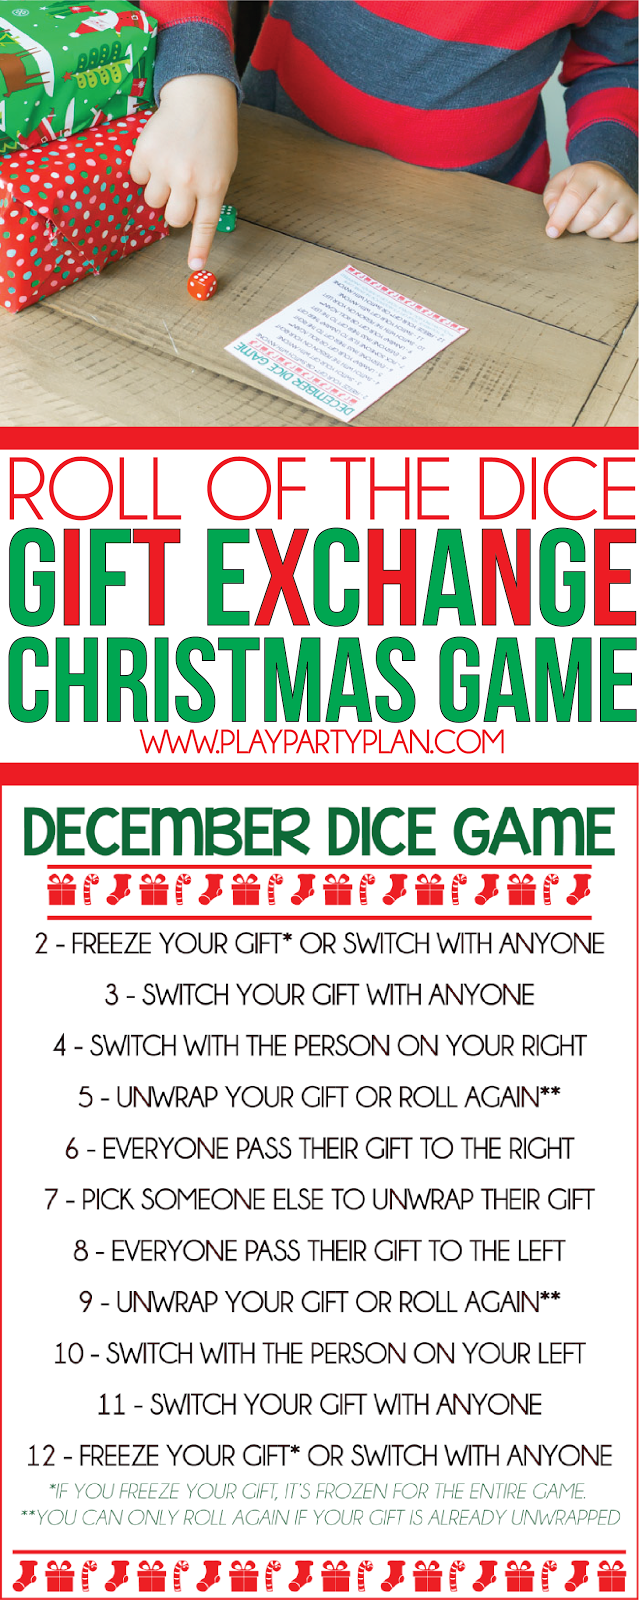 Versatile image intended for christmas dice game printable